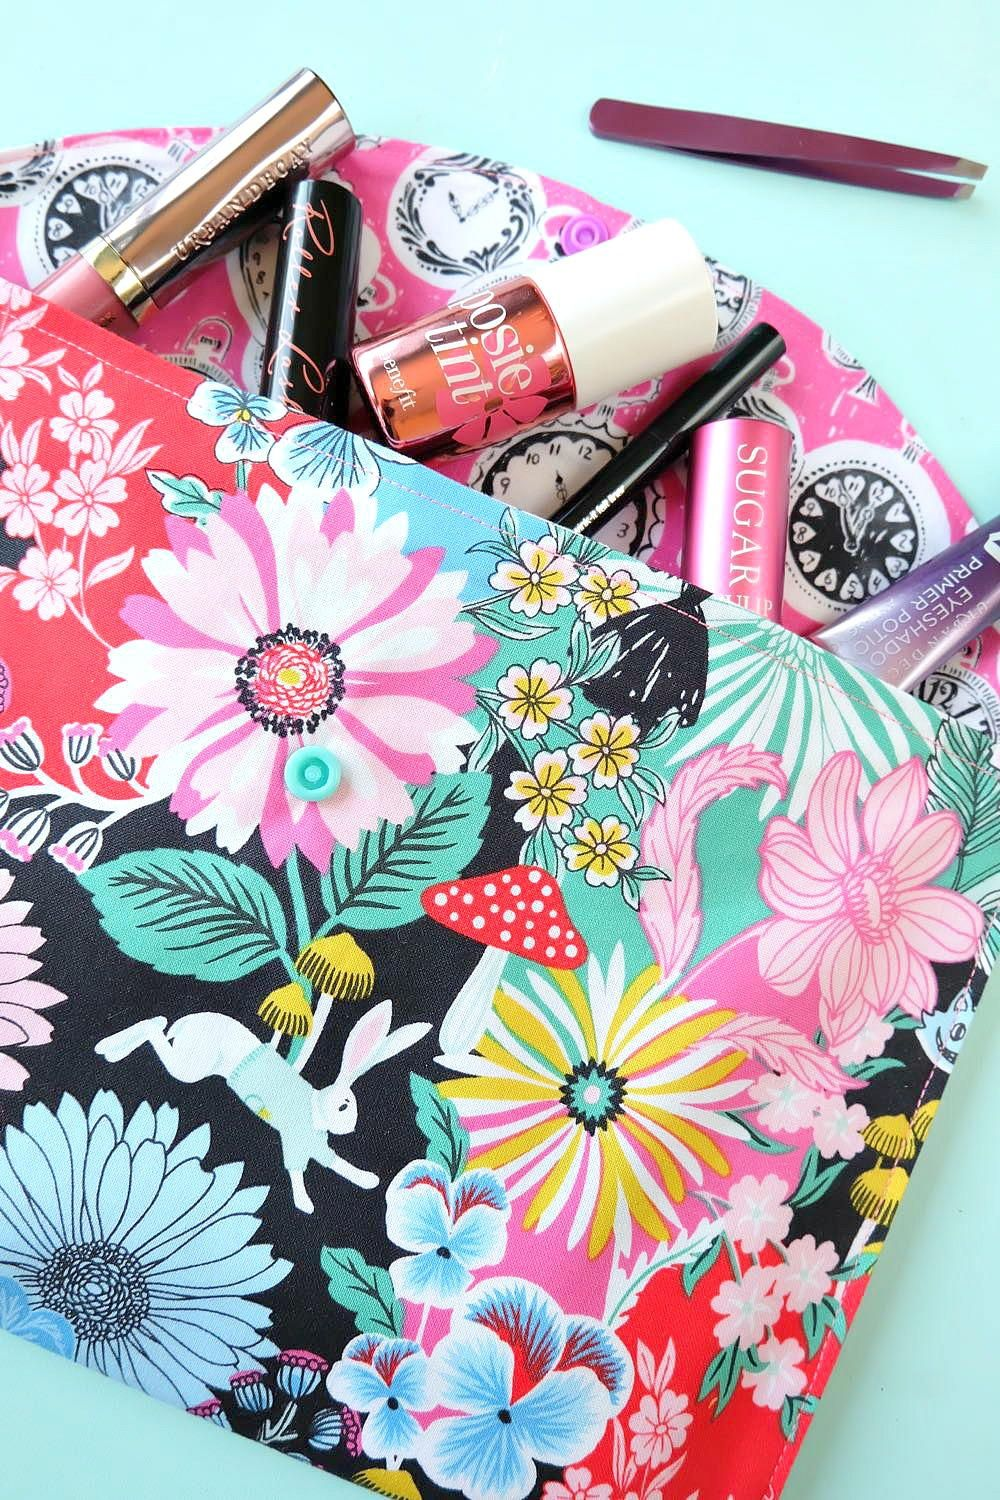 20 Minute Makeup Bag Sewing Tutorial Hand sewing